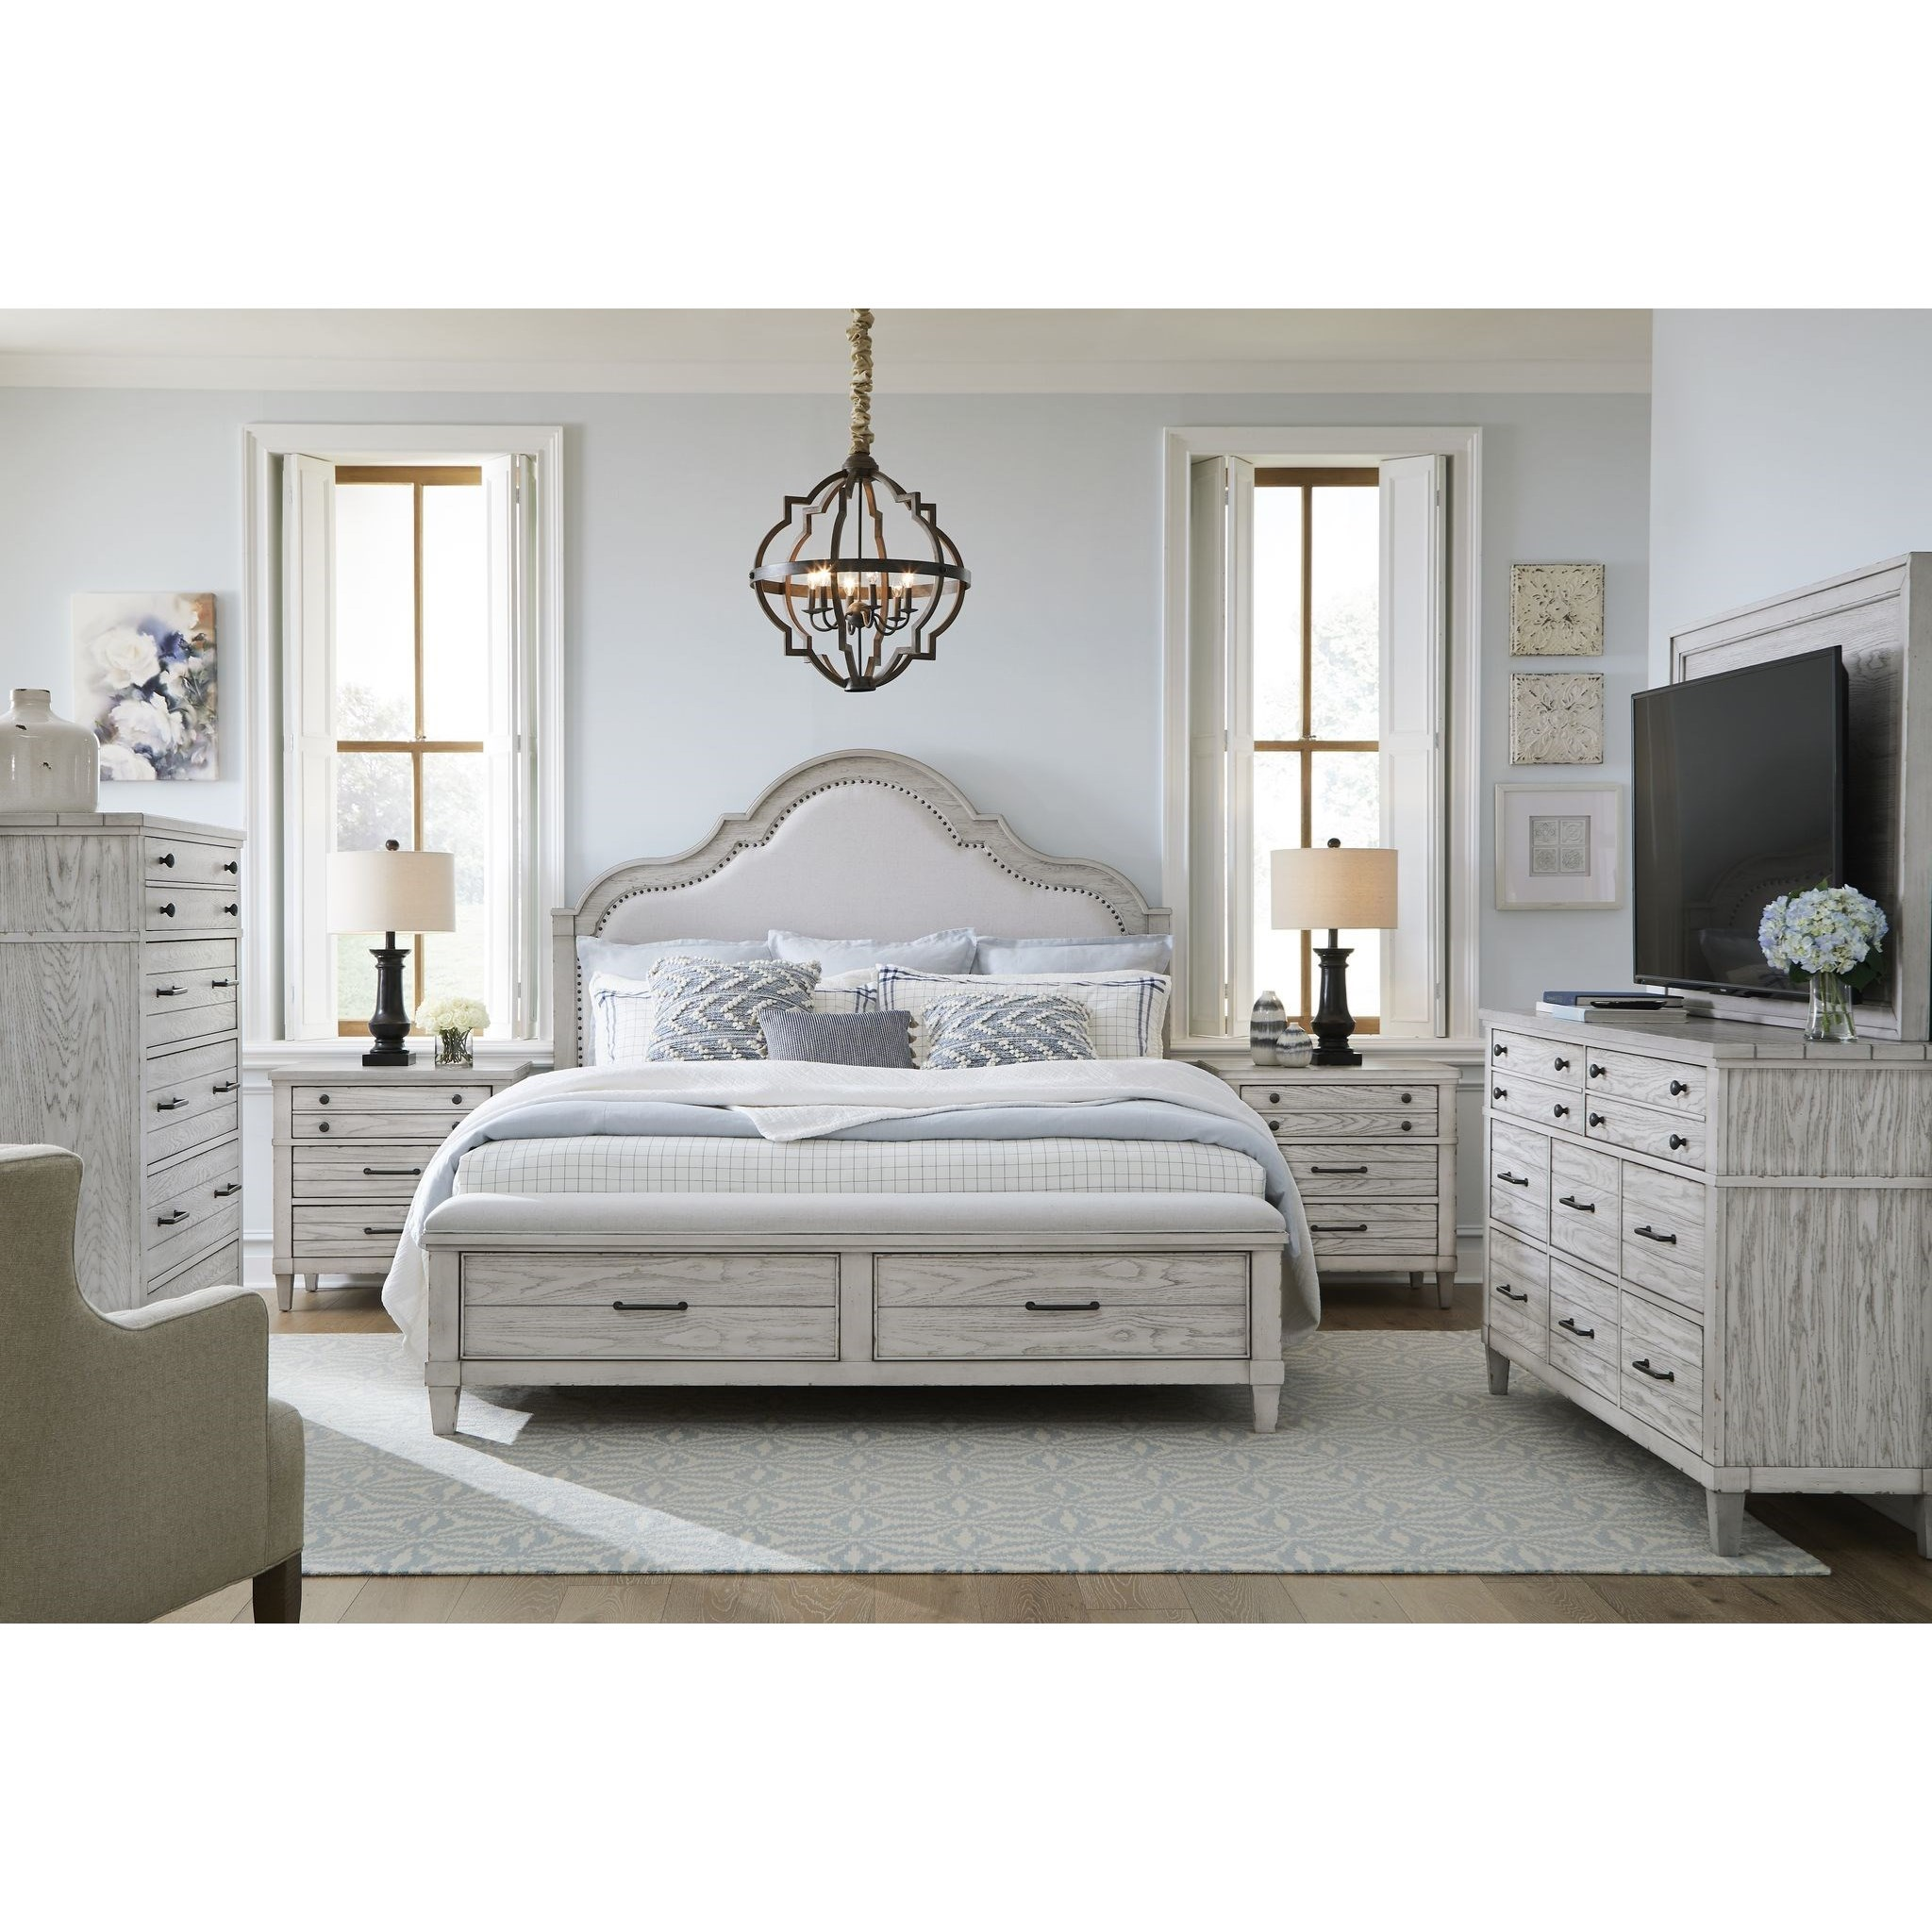 Belhaven King Bedroom Group by Legacy Classic at EFO Furniture Outlet